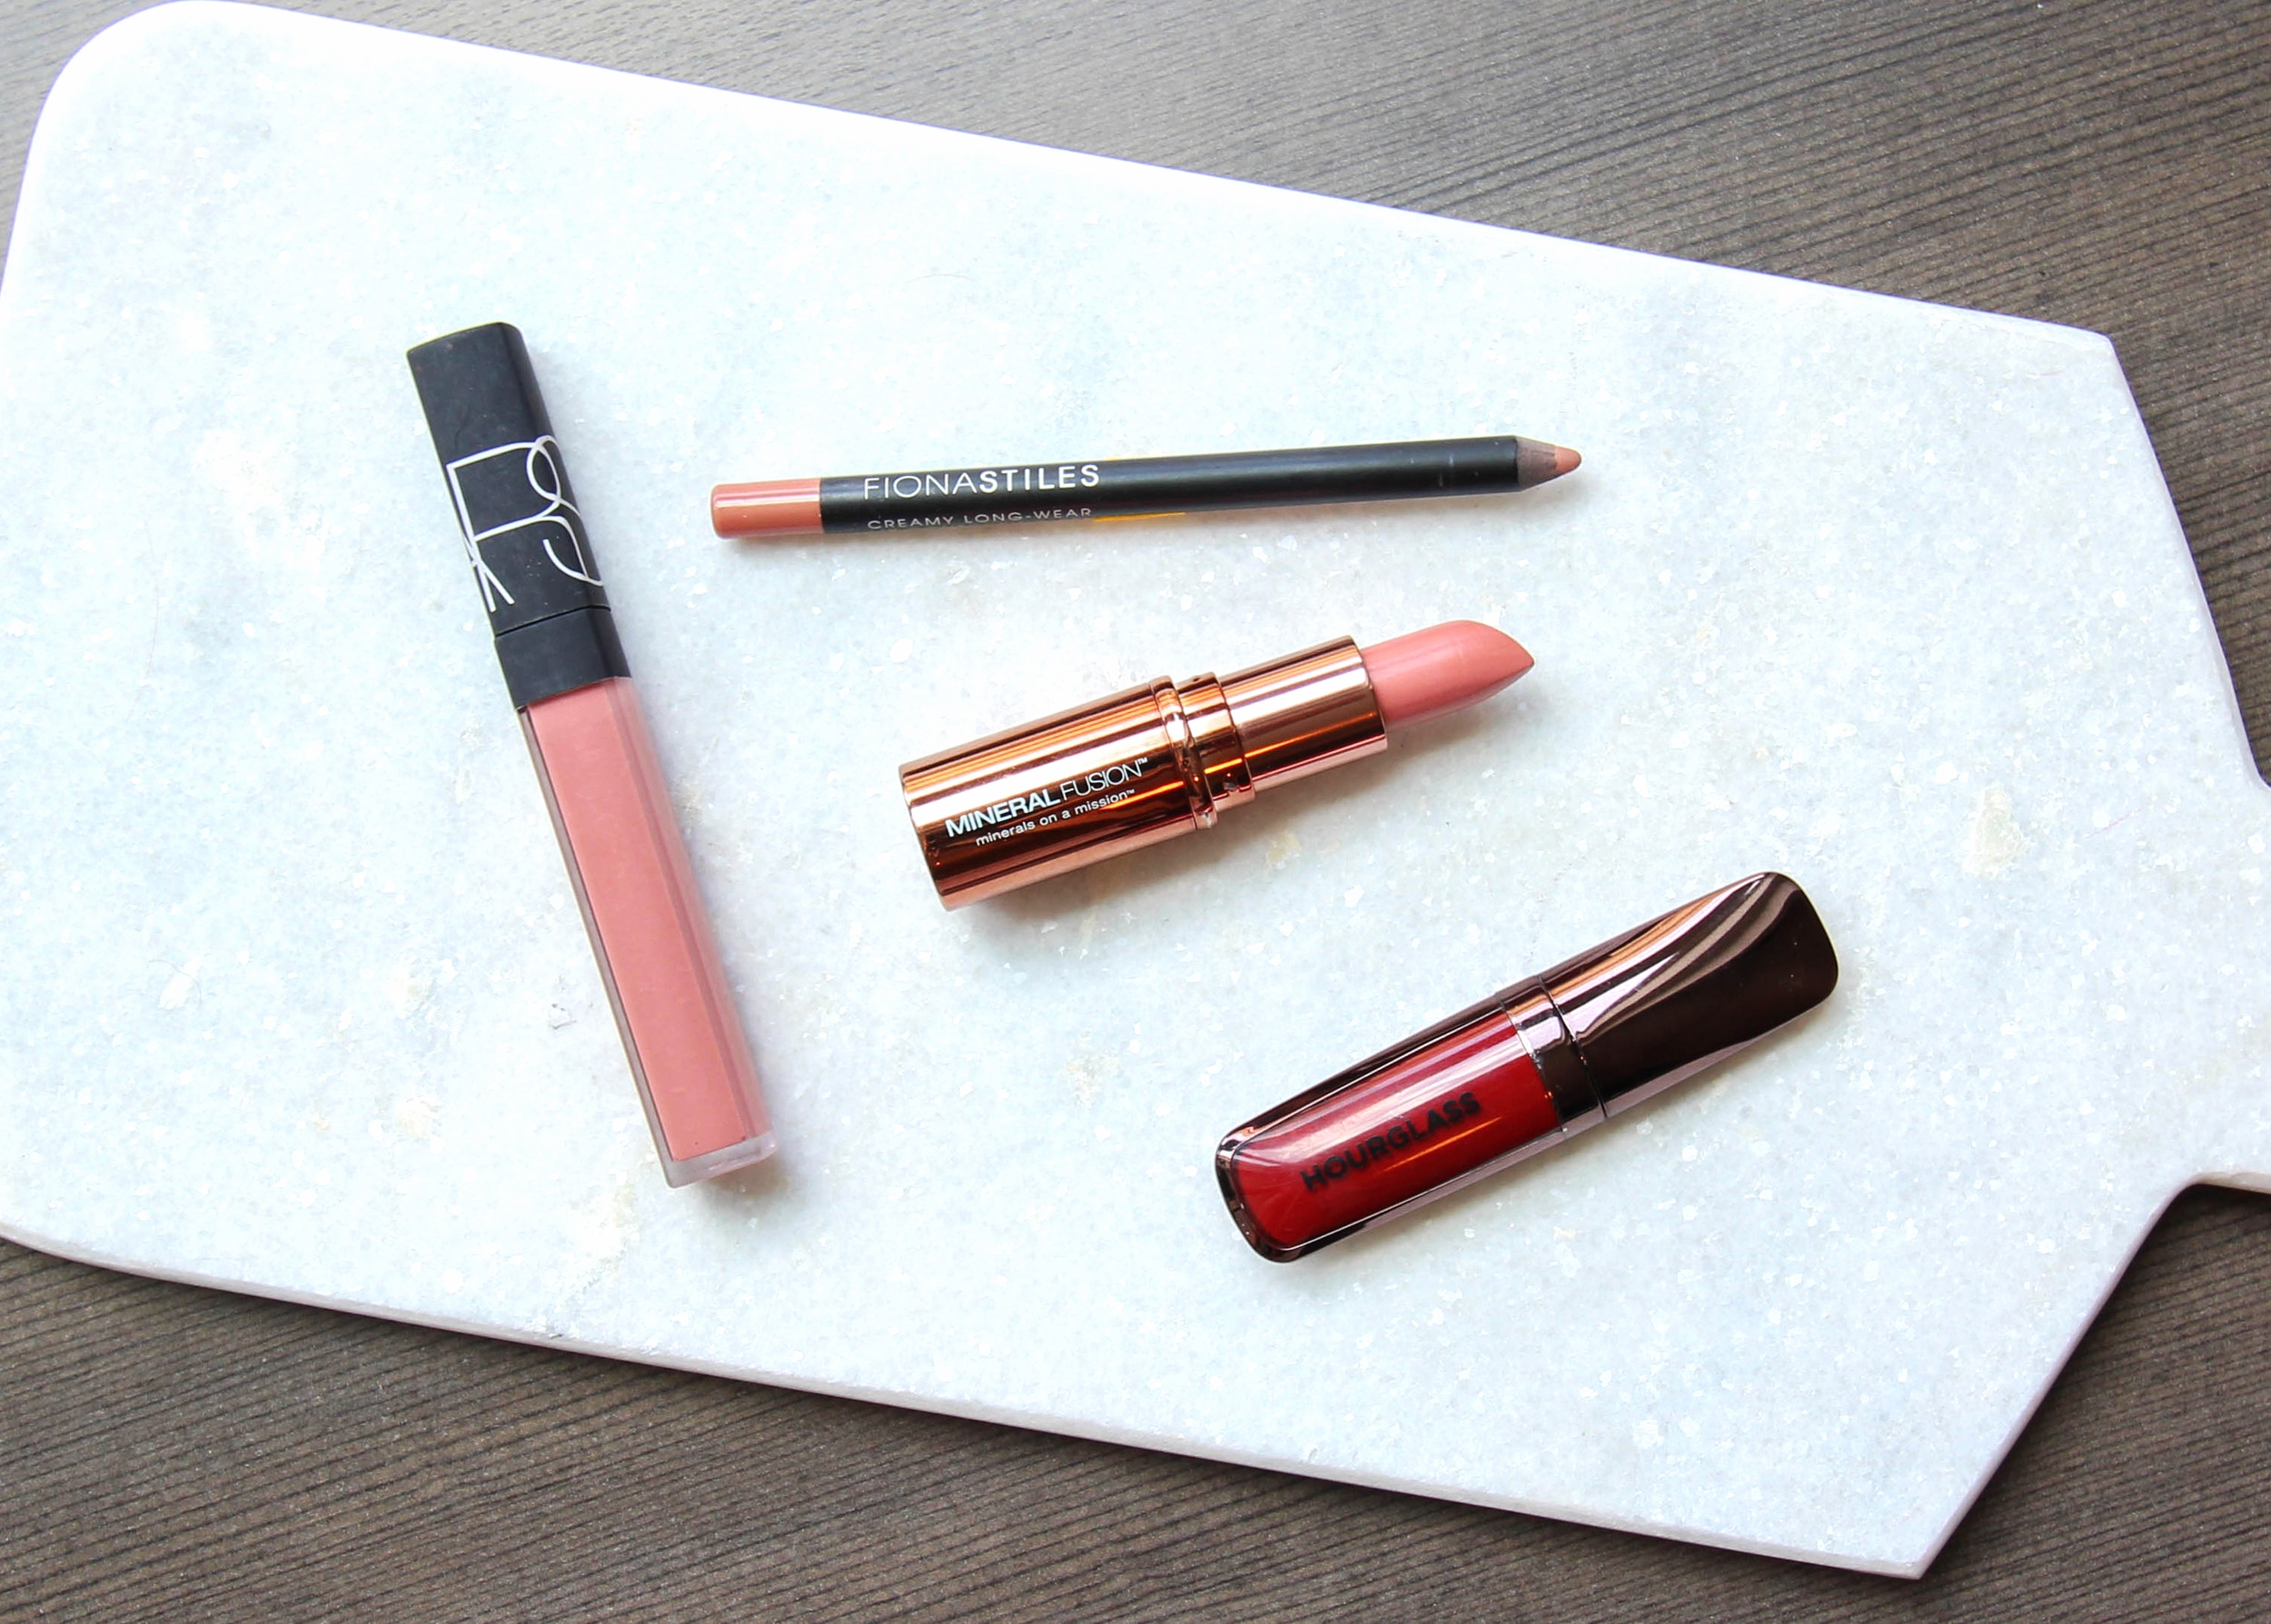 LEFT TO RIGHT: NARS - Chelsea Girls, Fiona Stiles - Doña Amelia, Mineral Fusion - Nude, Hourglass - Icon